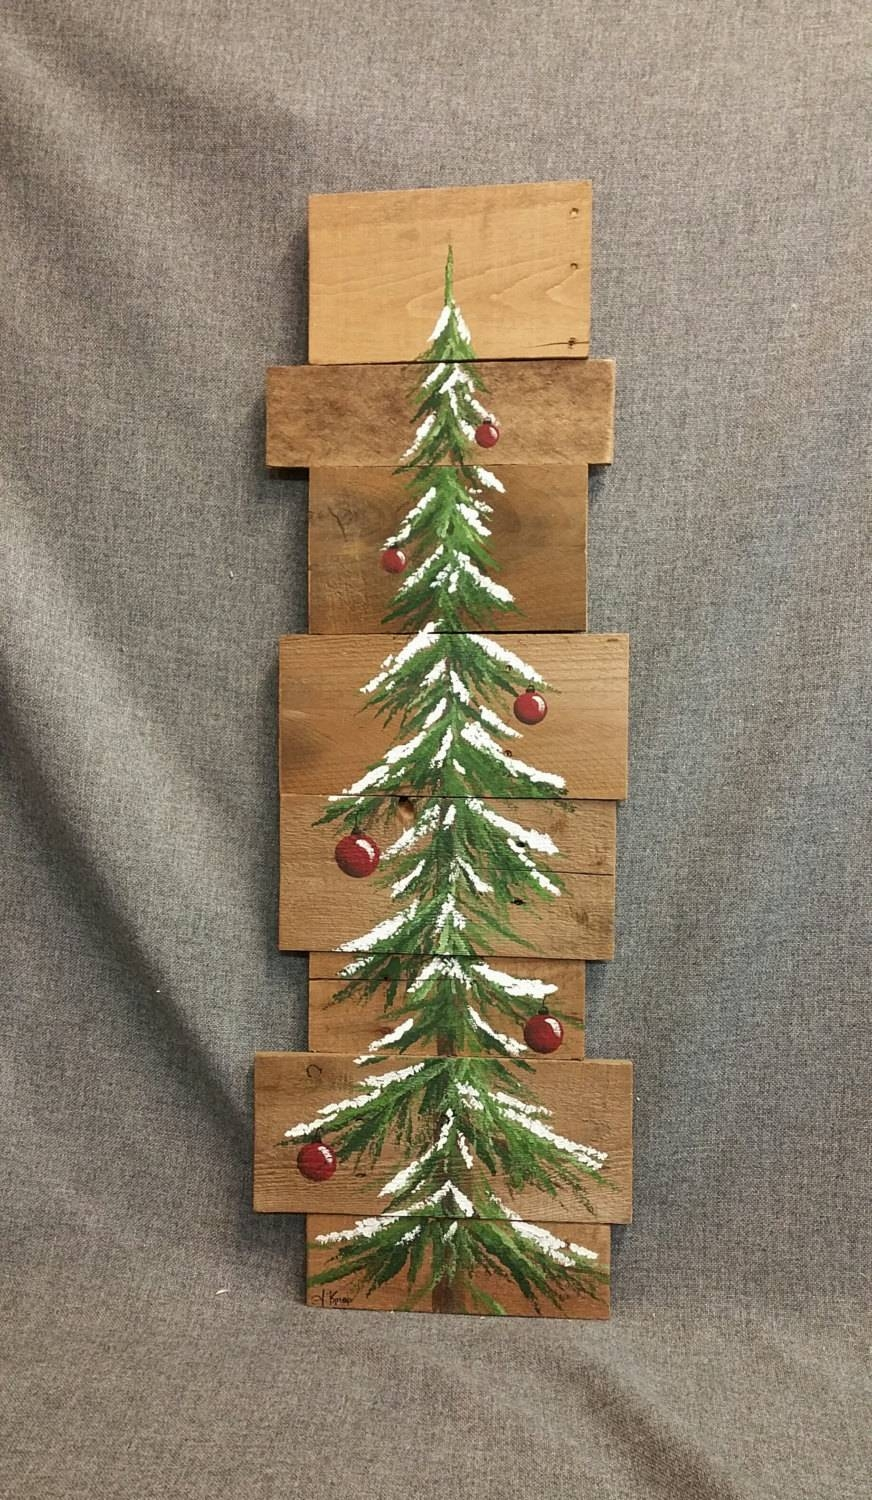 Christmas Tree Red Bulbs Pine Tree Reclaimed Wood Pallet Within Most Recent Pine Tree Wall Art (View 6 of 30)